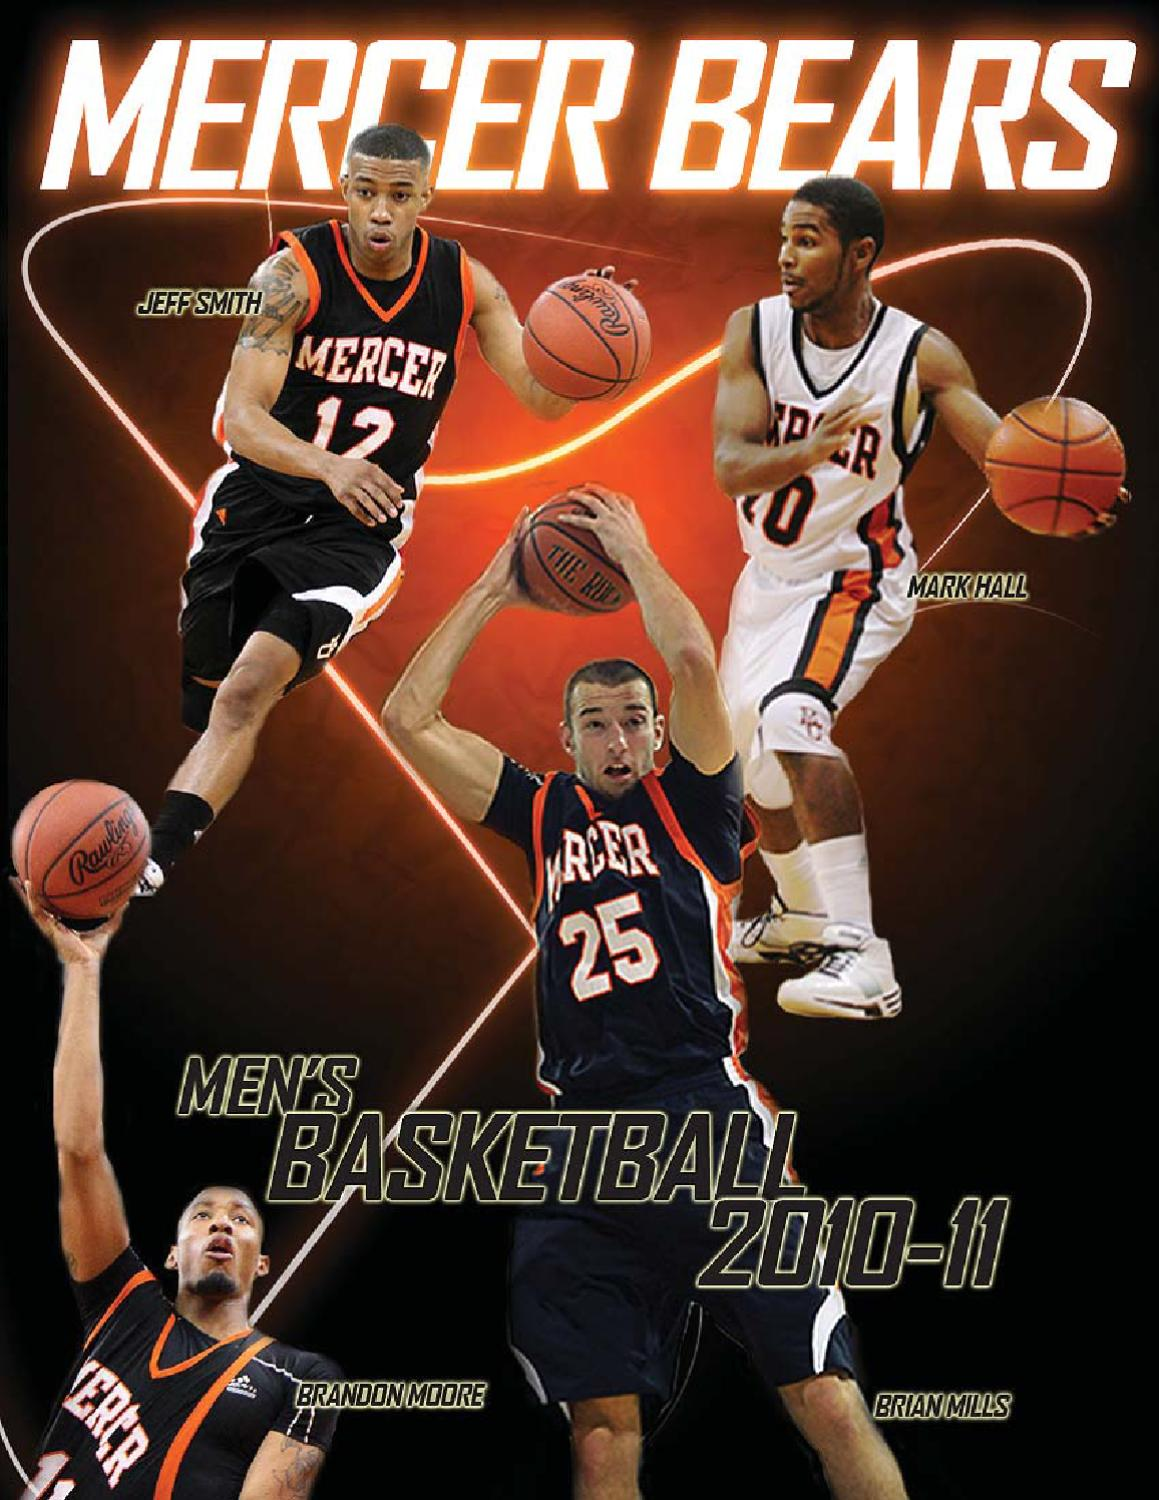 2010-11 Mercer Men s Basketball Guide by dave beyer - issuu 2872e59b4